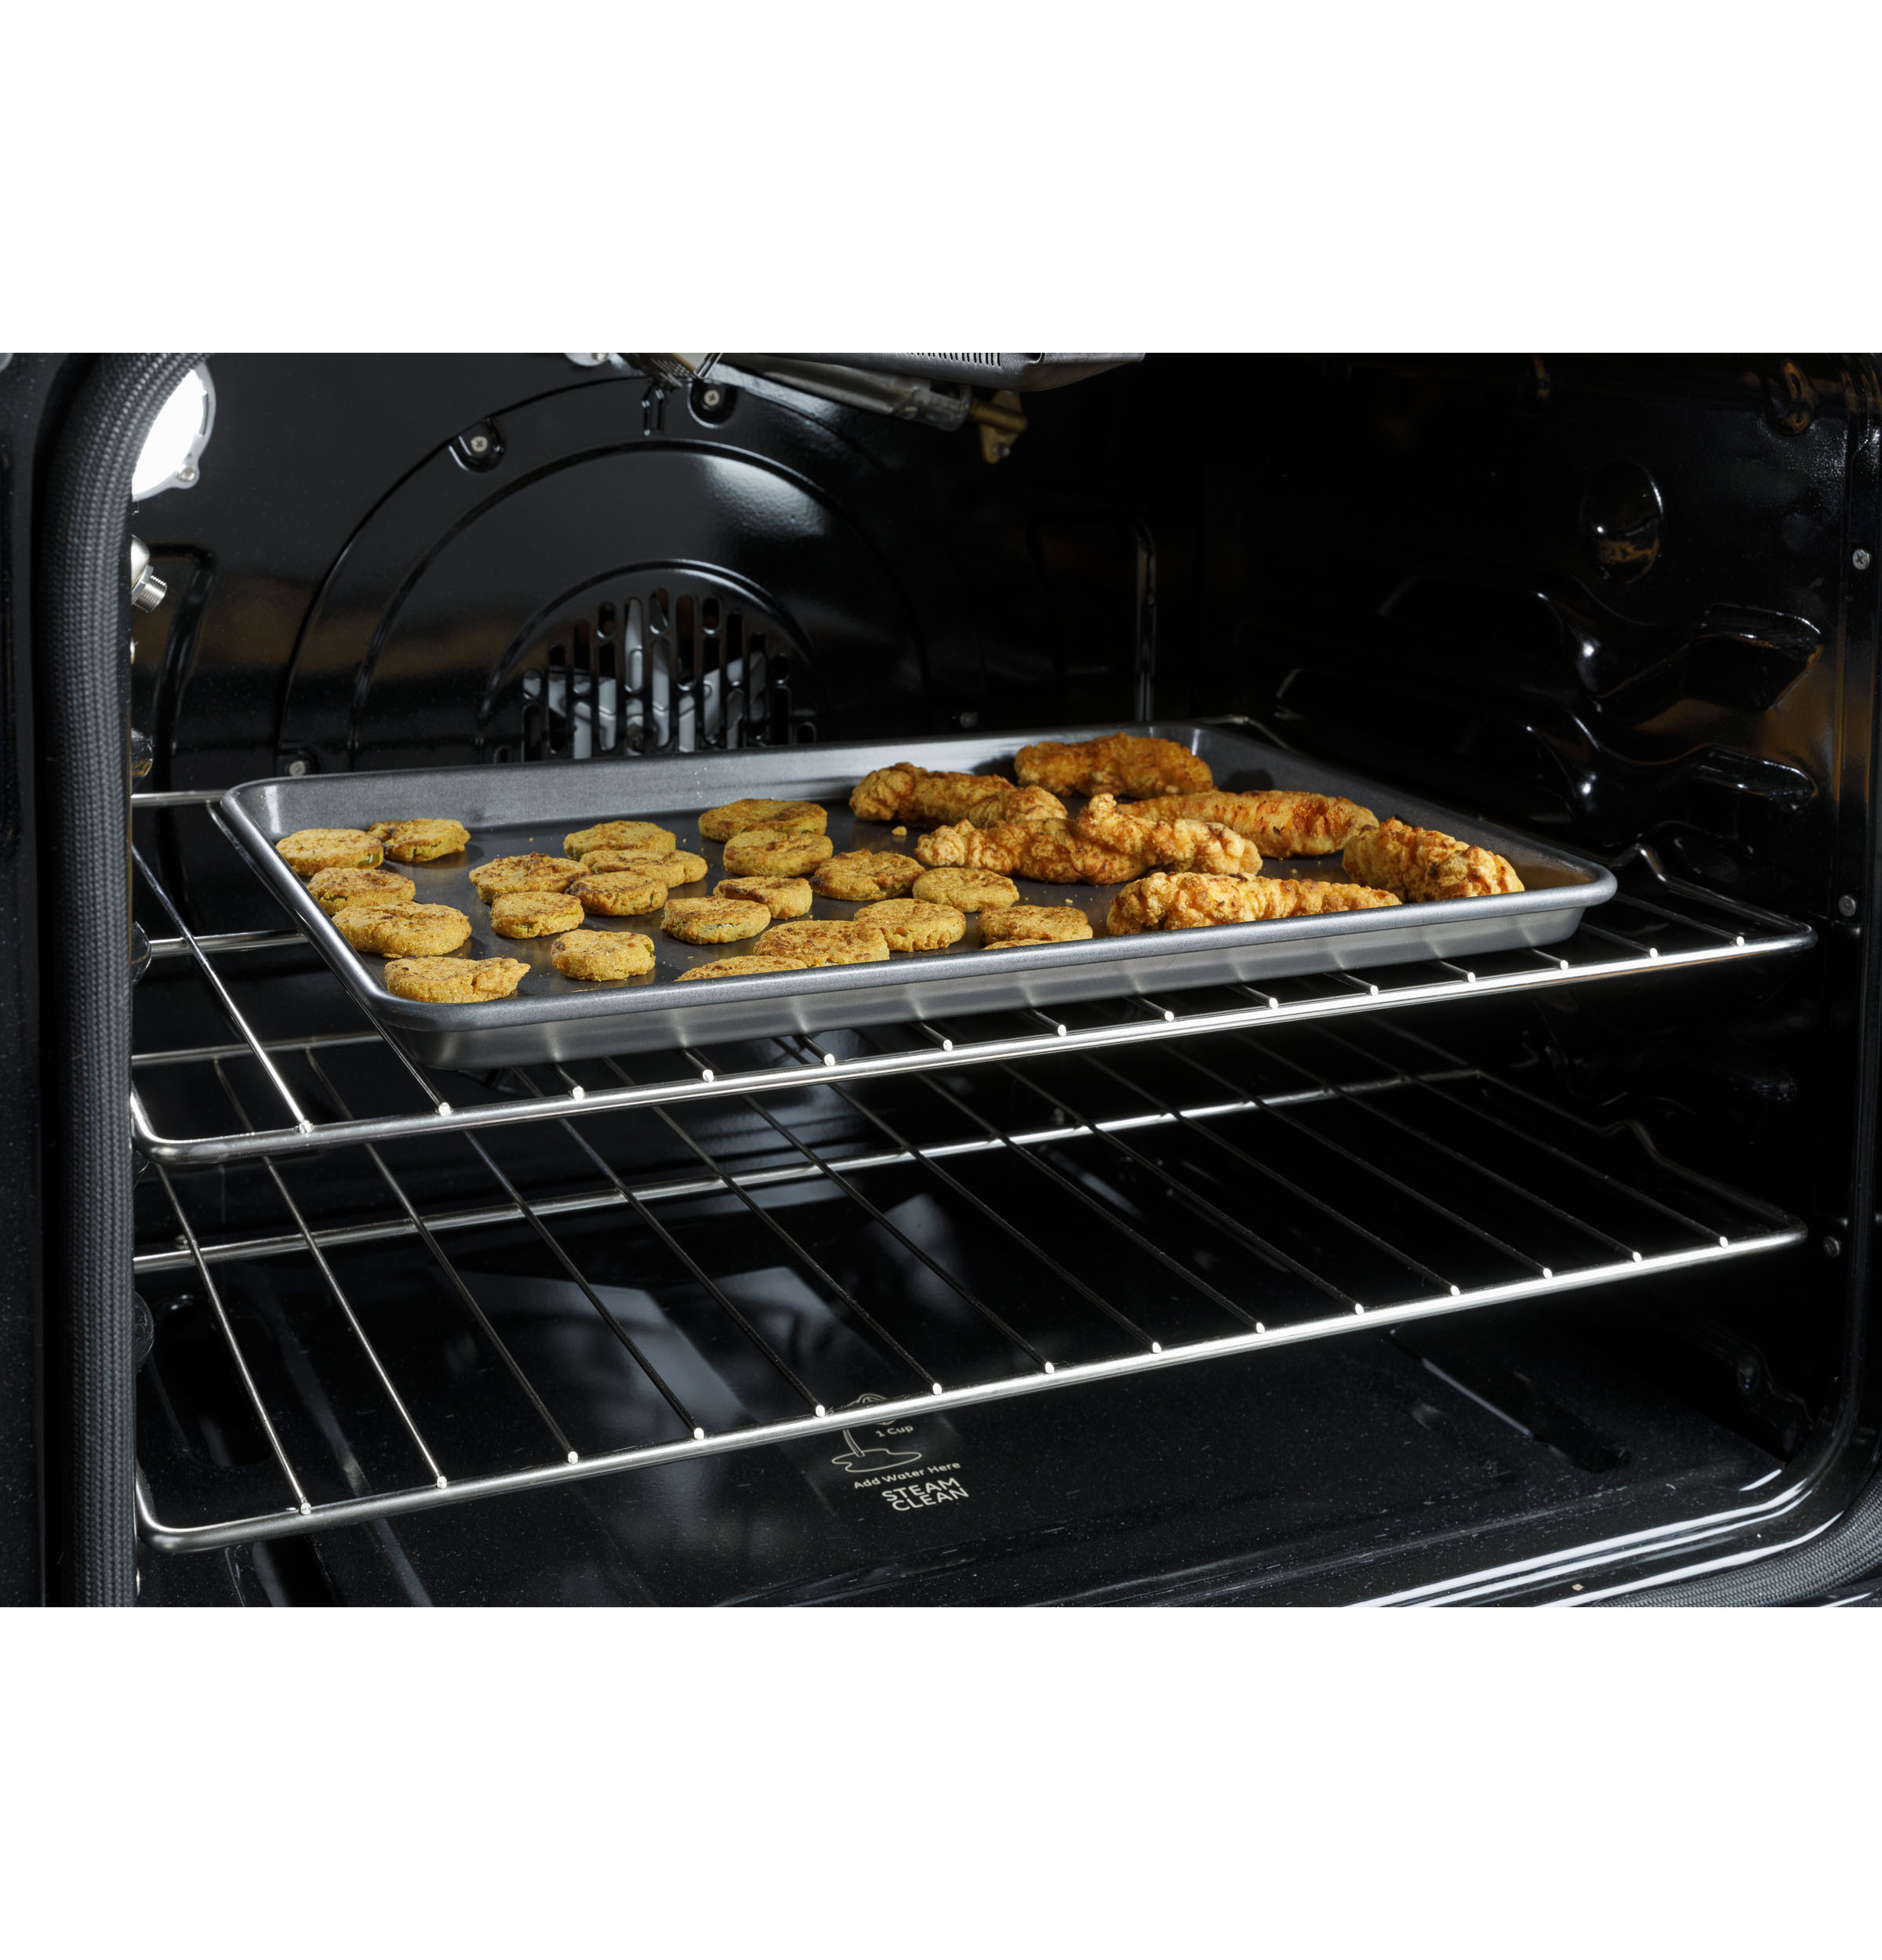 """Model: QSS740BNTS   Haier 30"""" Smart Slide-In Electric Range with Convection"""